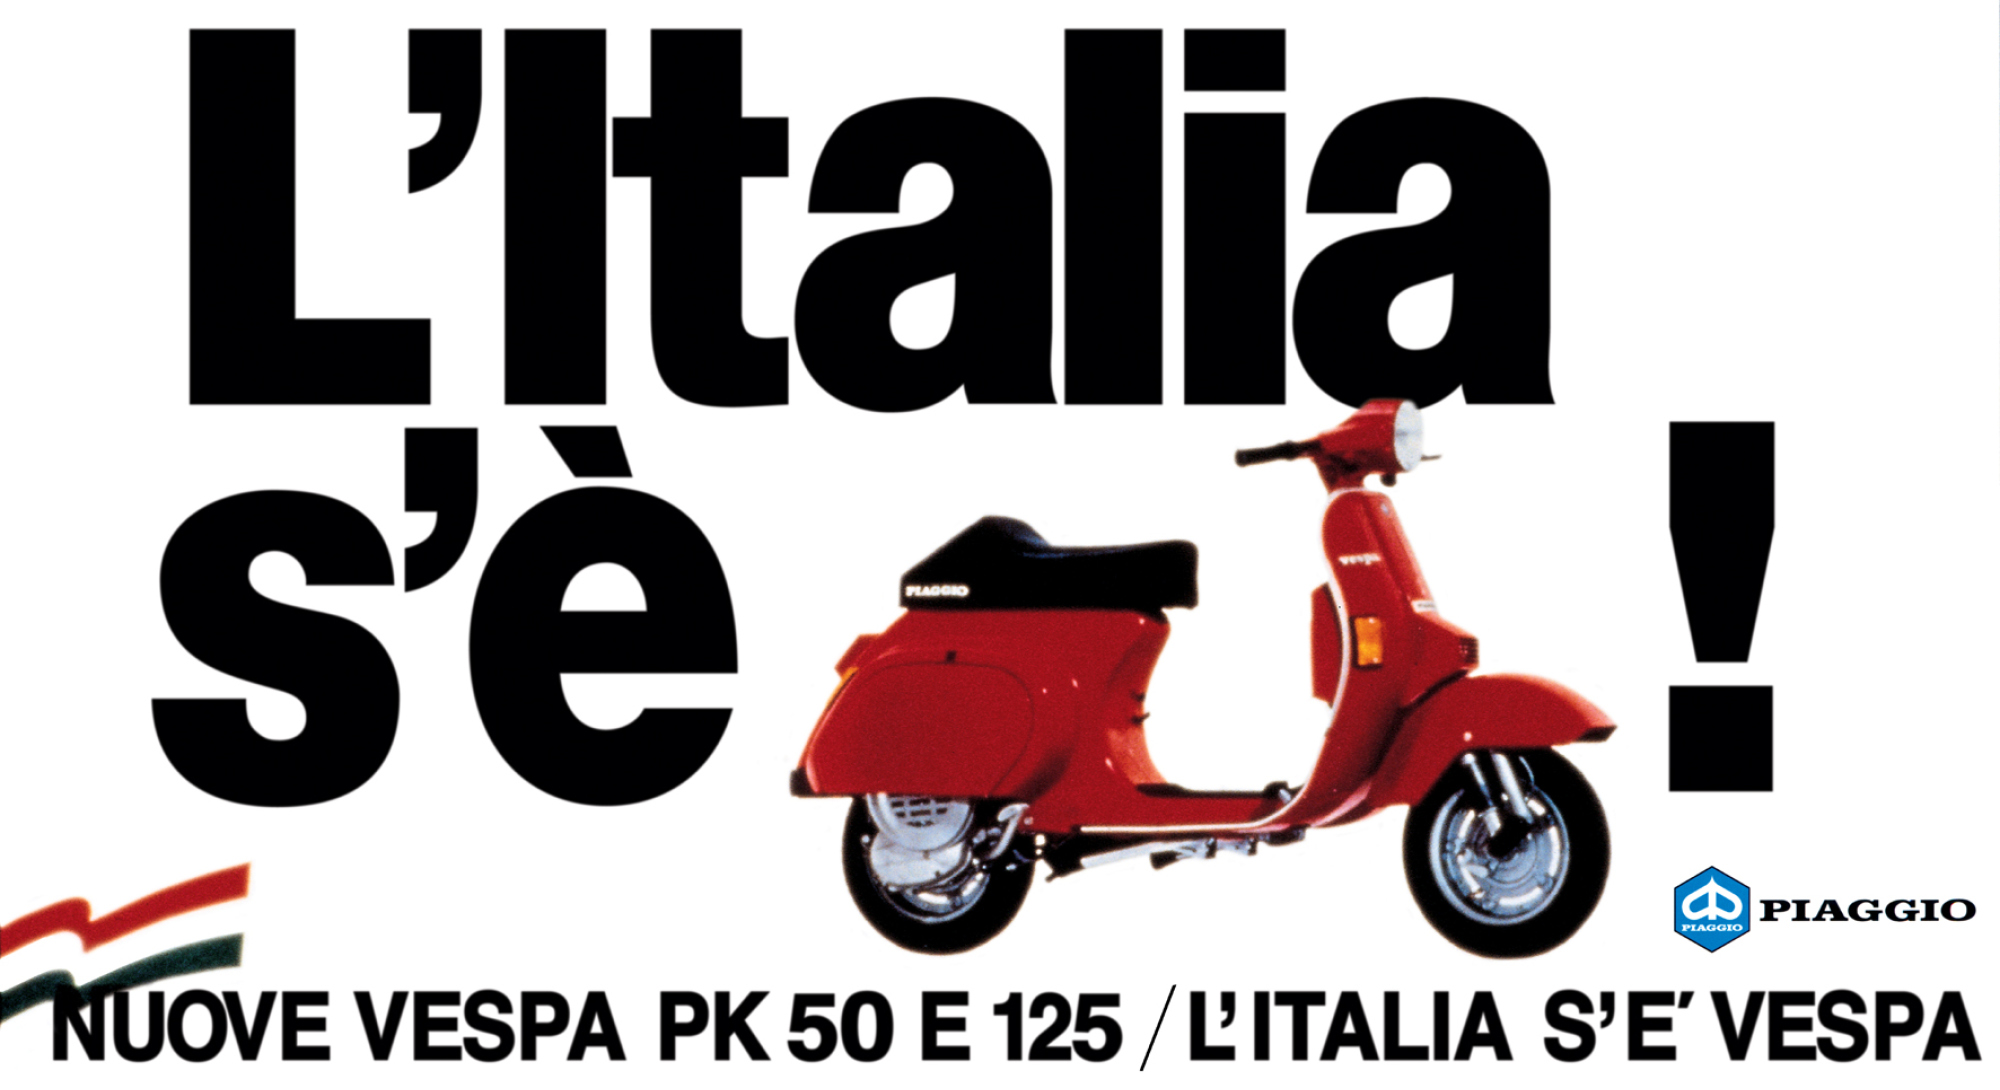 Piaggio is celebrating 75 years of the Vespa this year